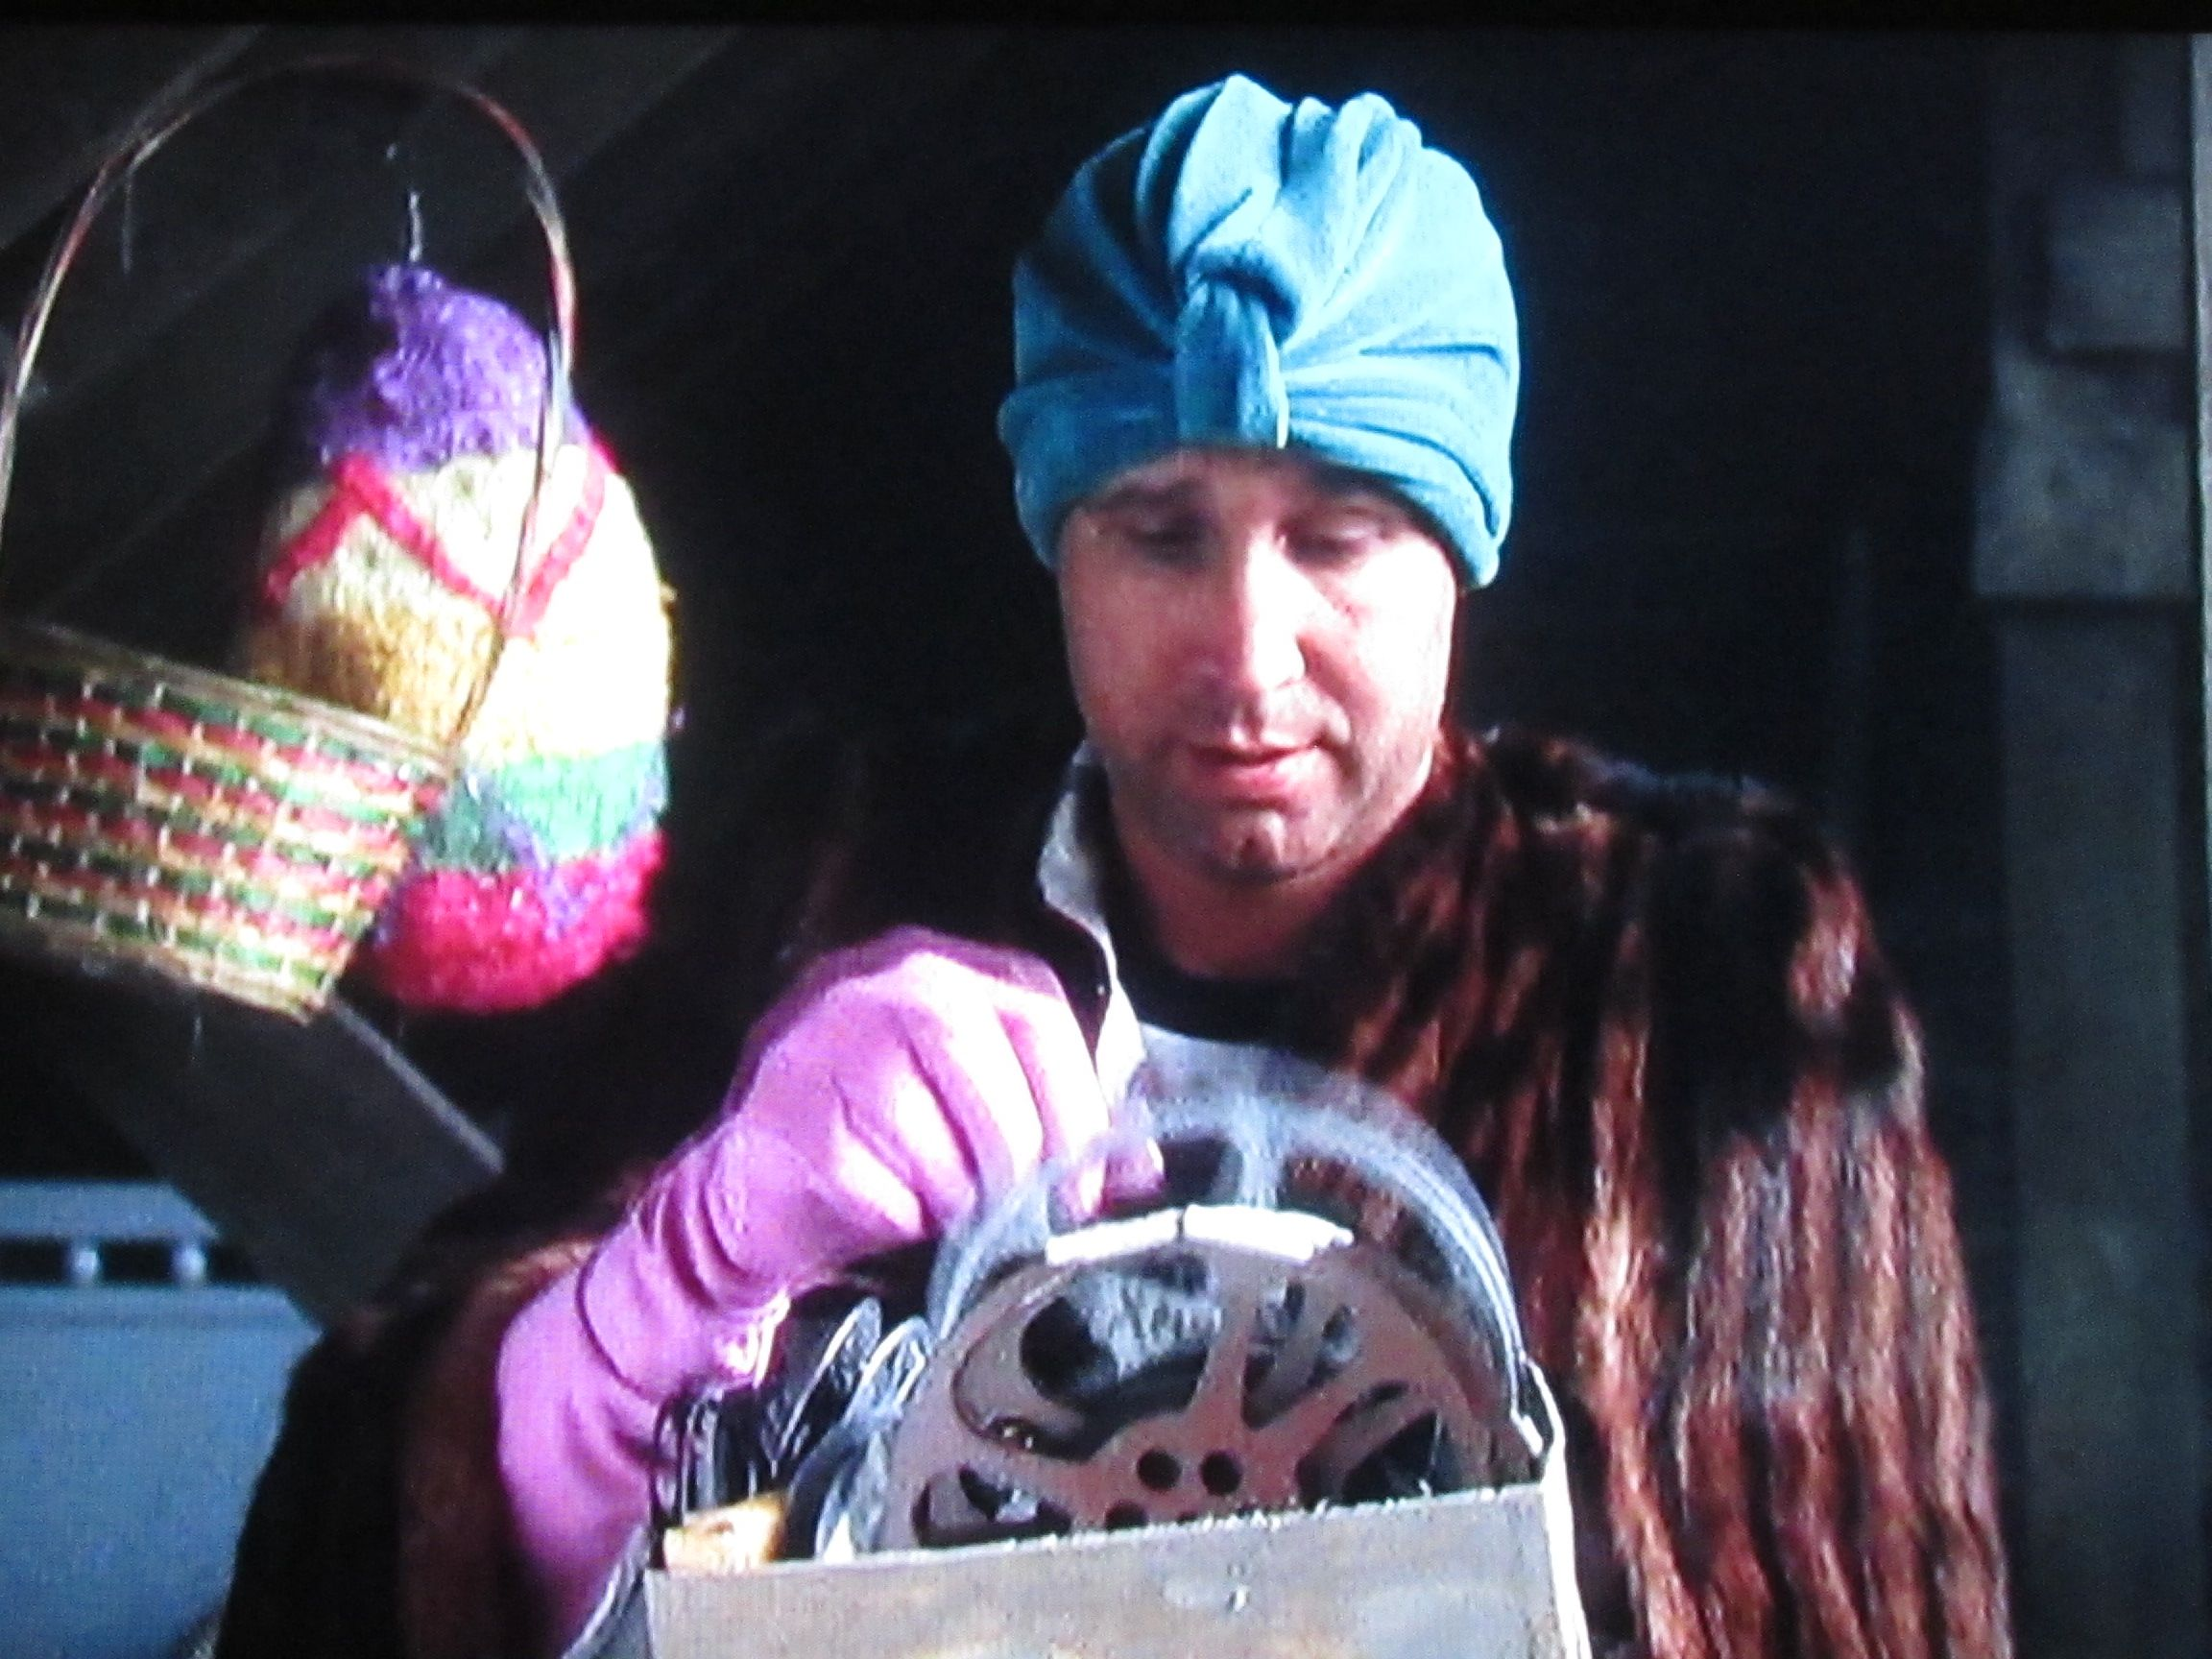 National Lampoon's Christmas Vacation movie clip. Clar